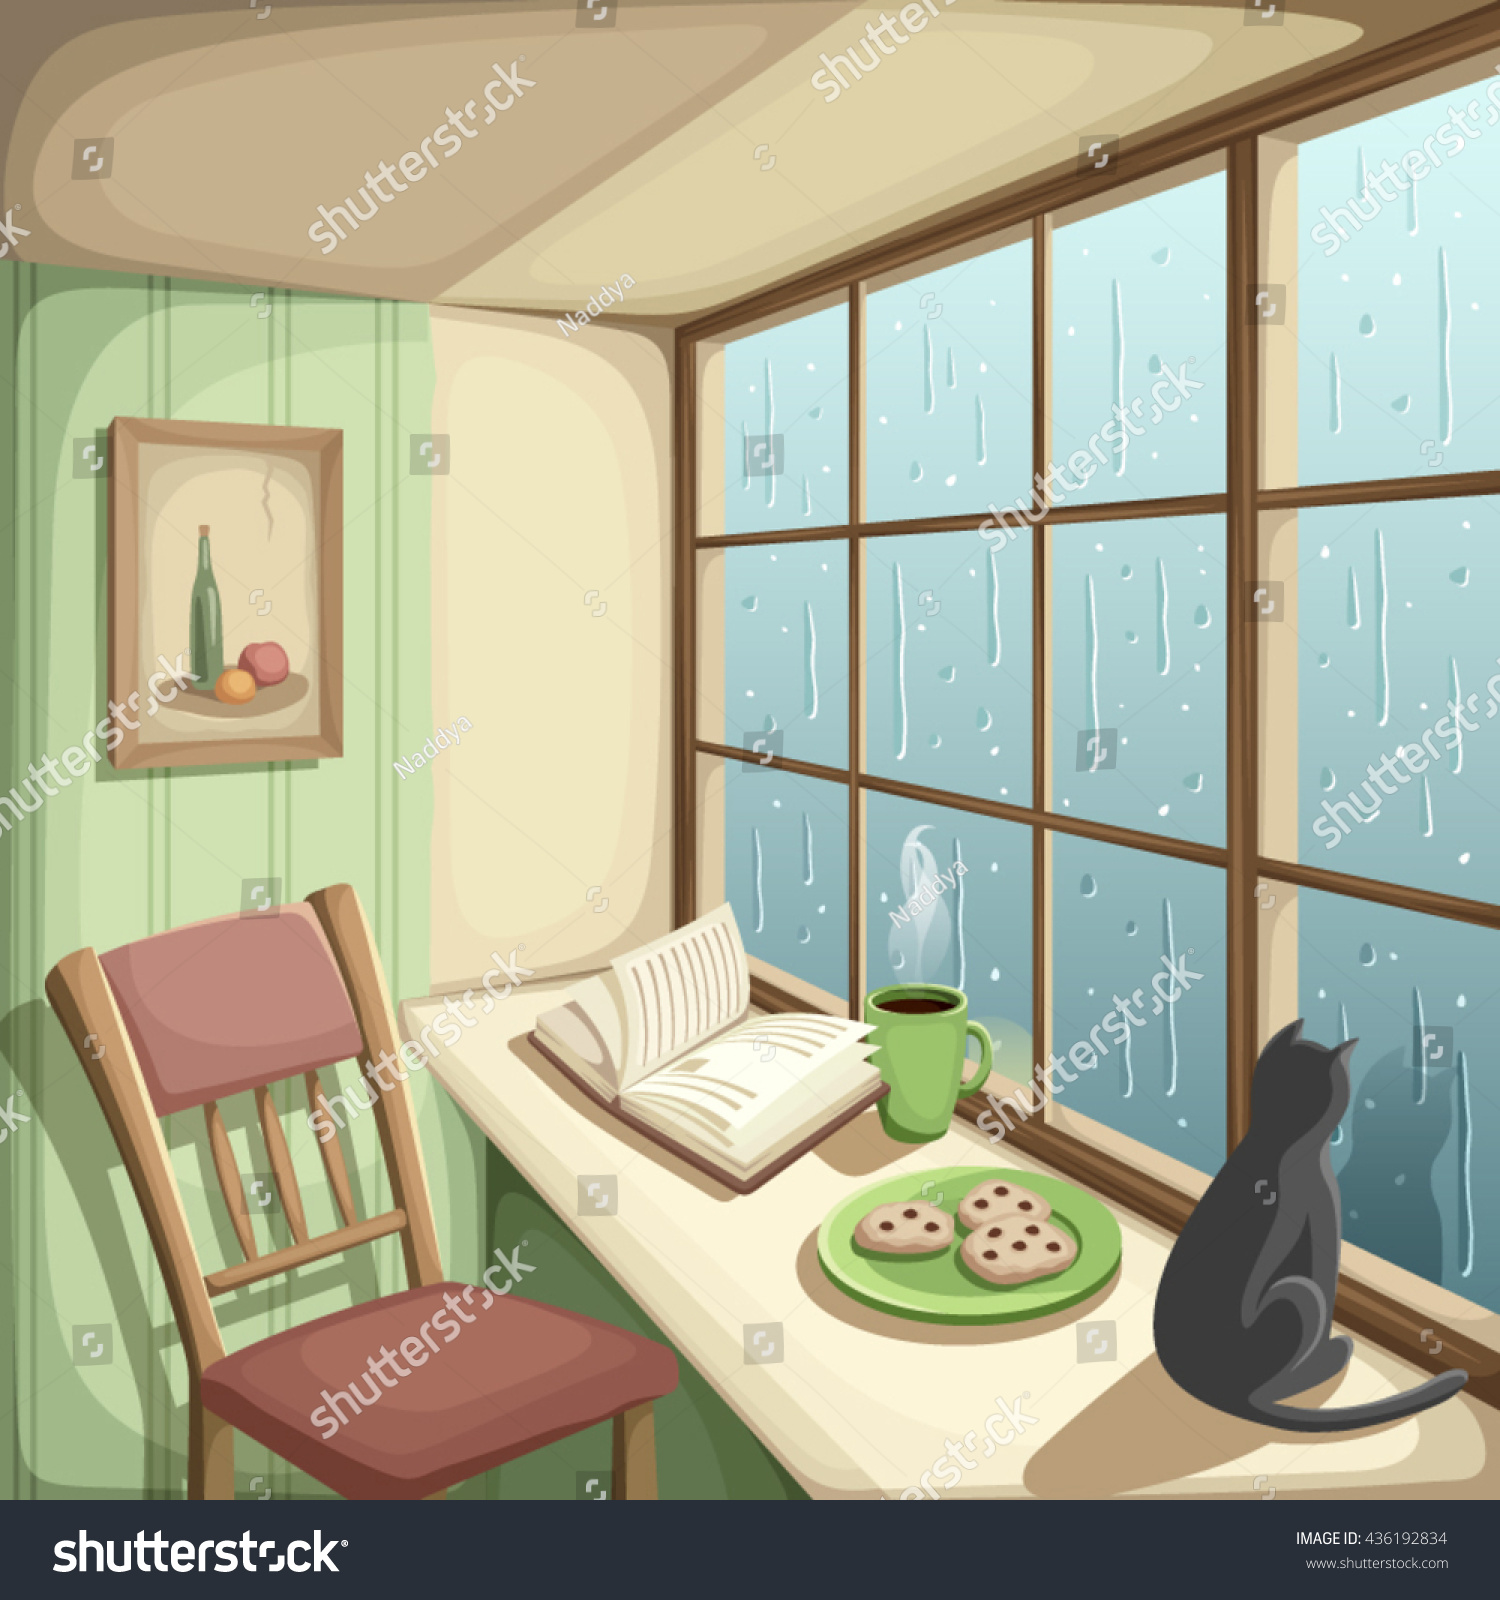 Vector Illustration Cozy Room Rain Outside Stock Vector